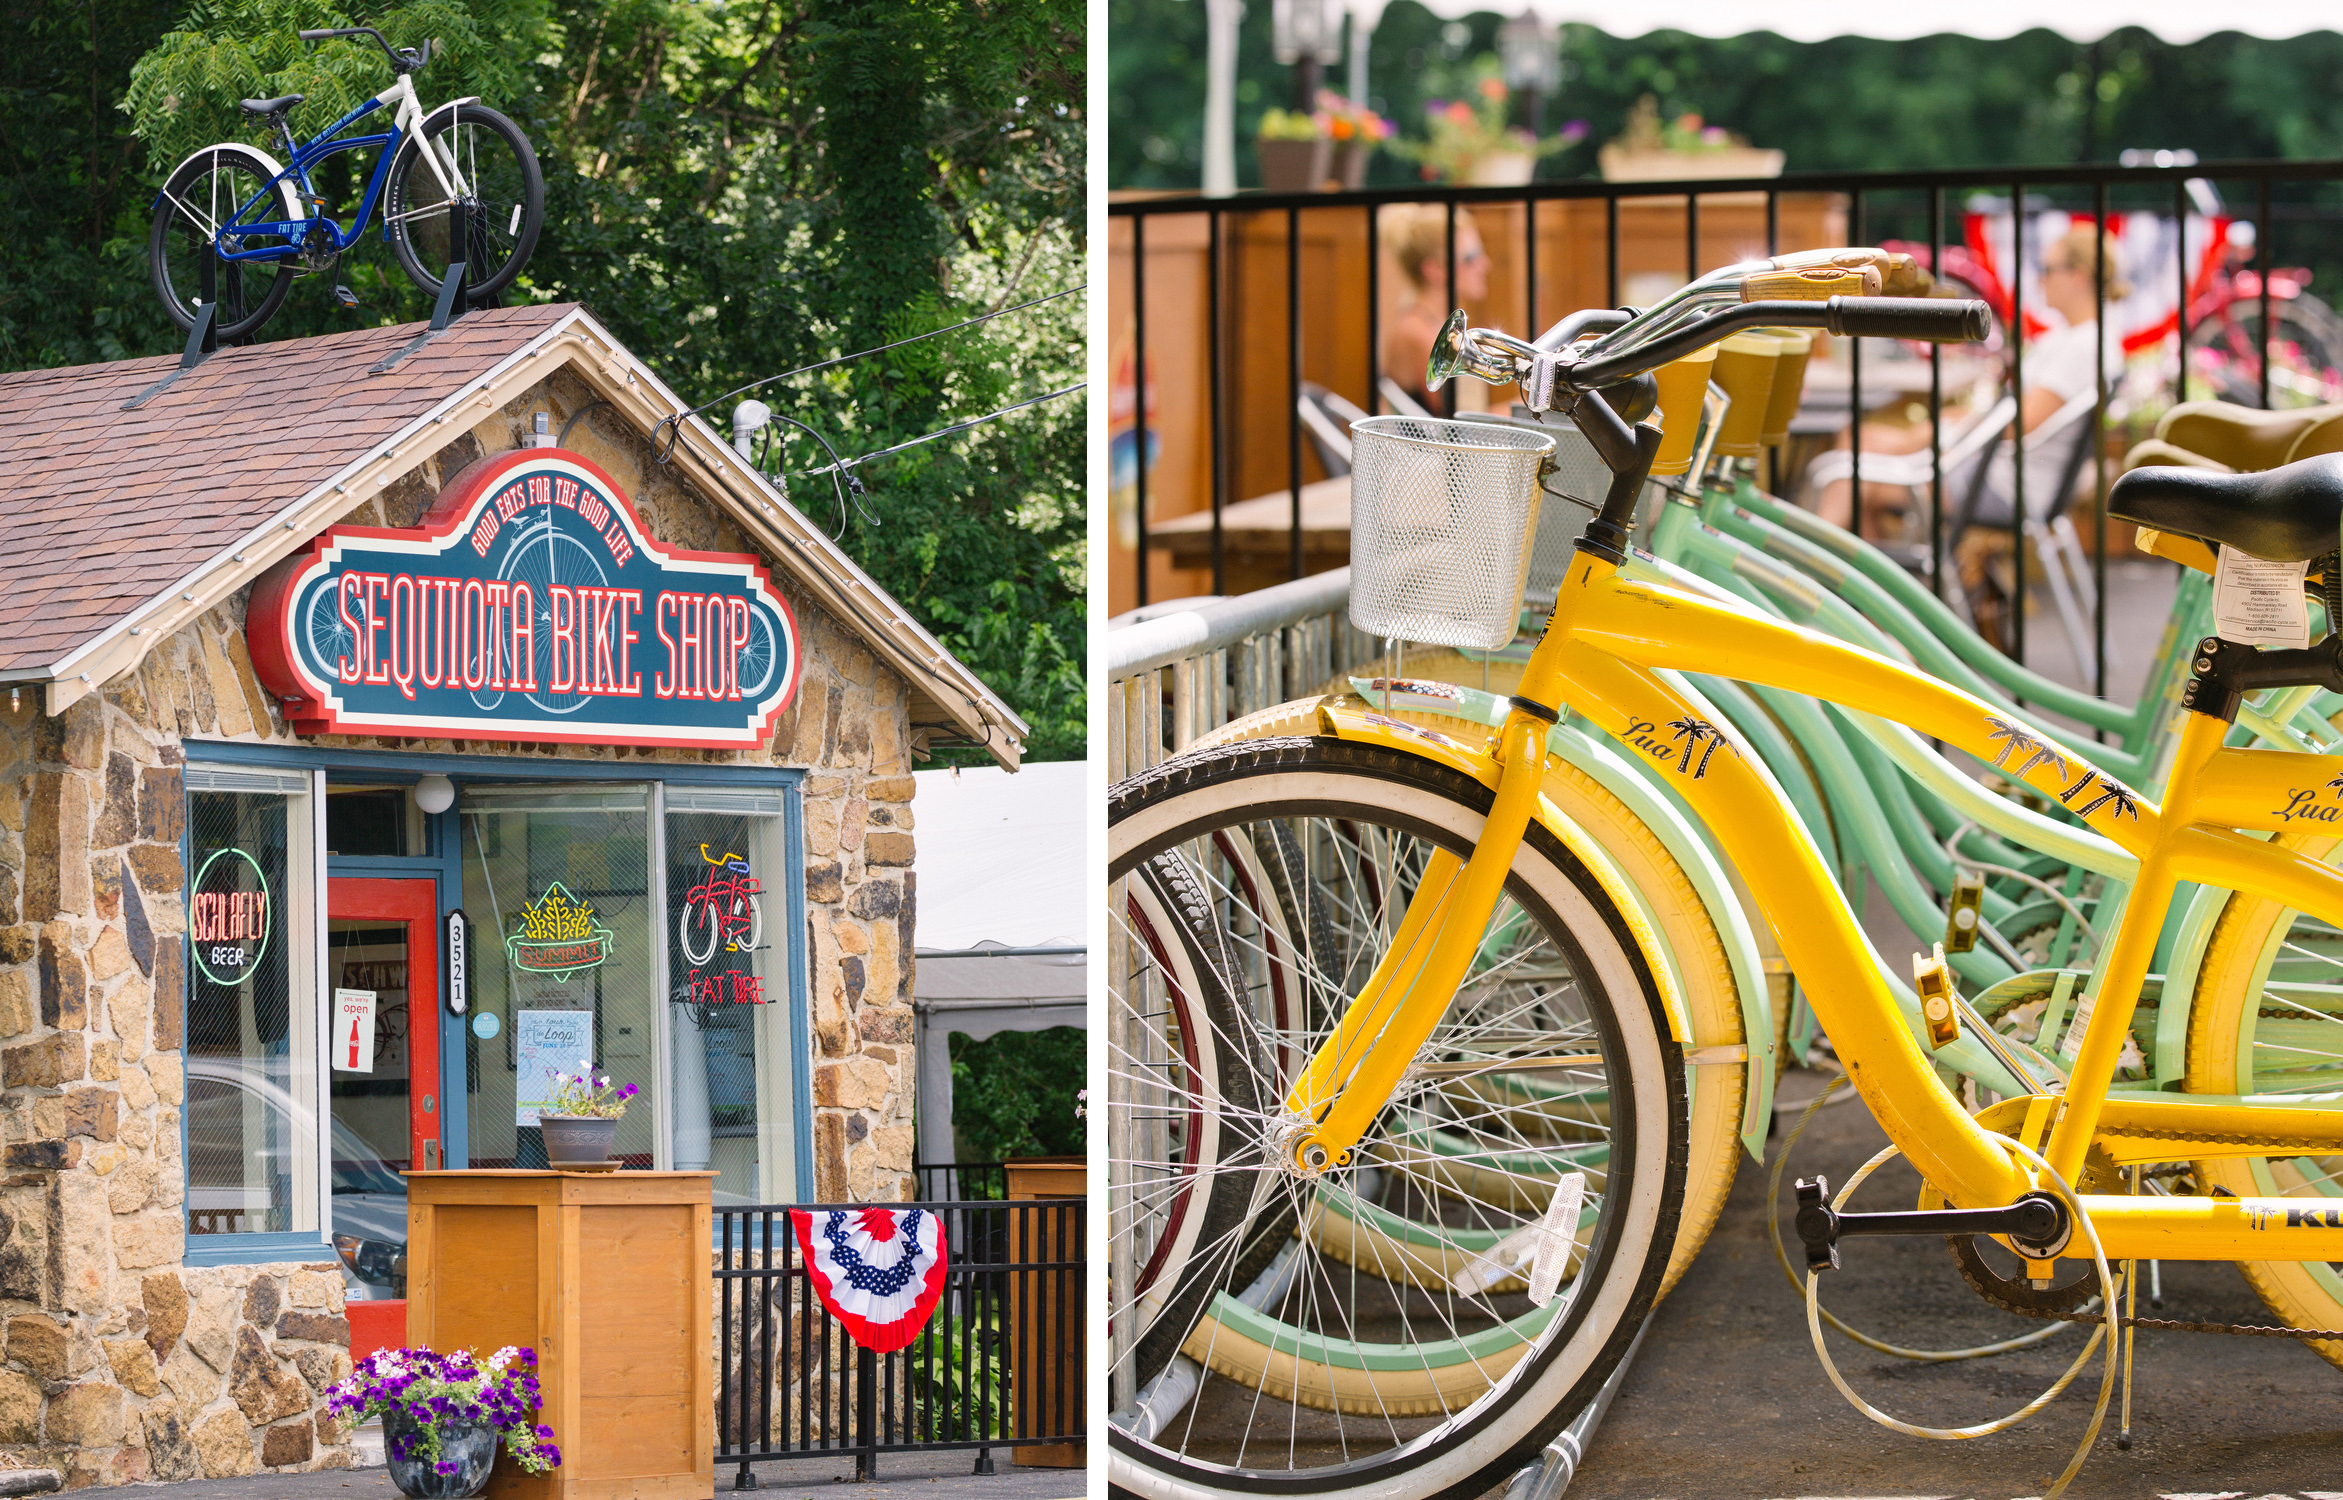 The Sequiota Bike Shop in Springfield, Mo. photographed on June 28, 2016. Photos by Brad Zweerink.